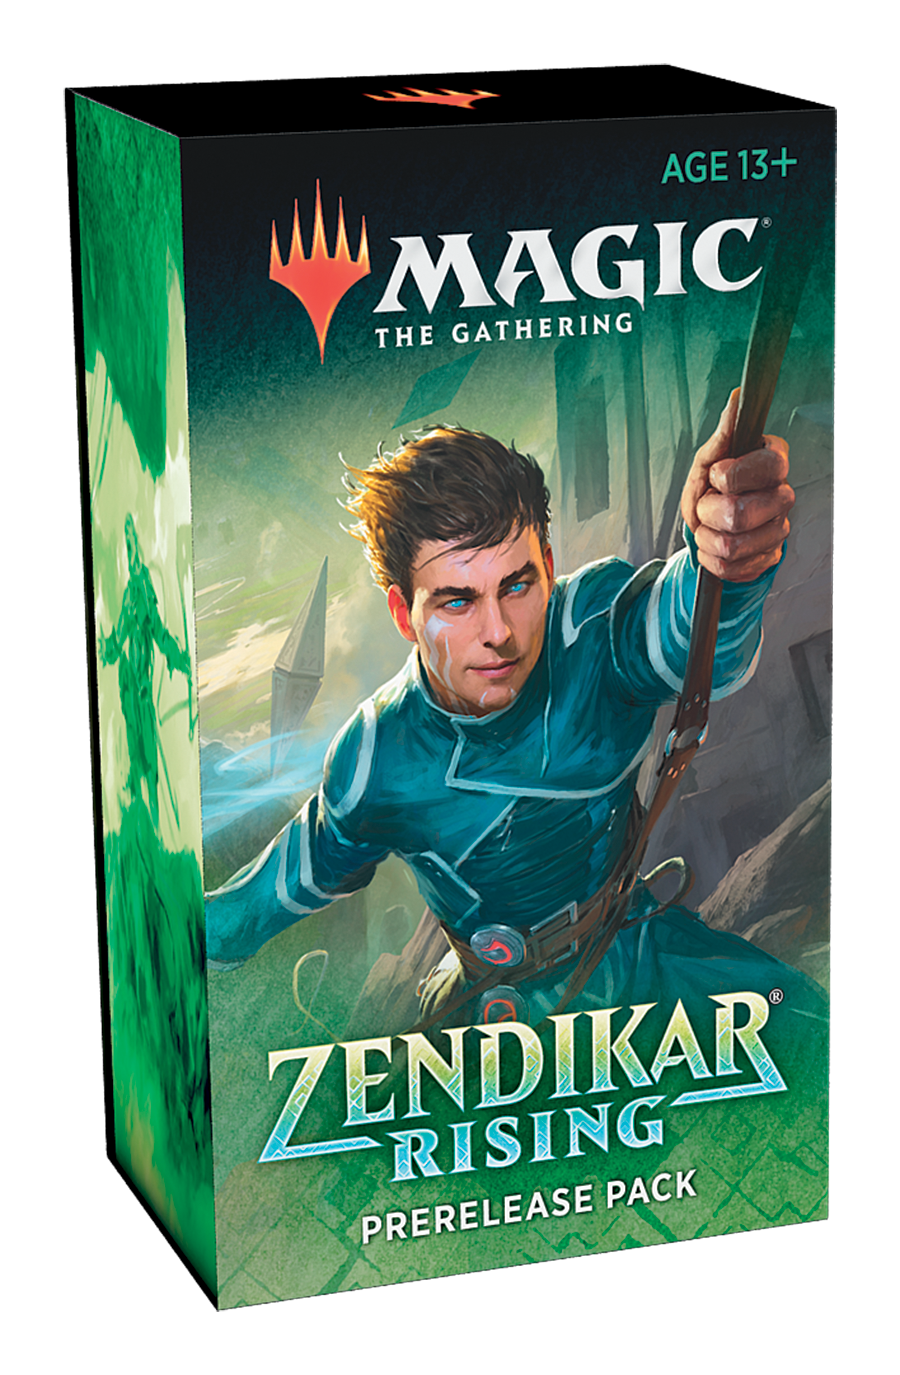 Zendikar Rising Prerelease Pack - Single Player Kit (Includes Set Booster)